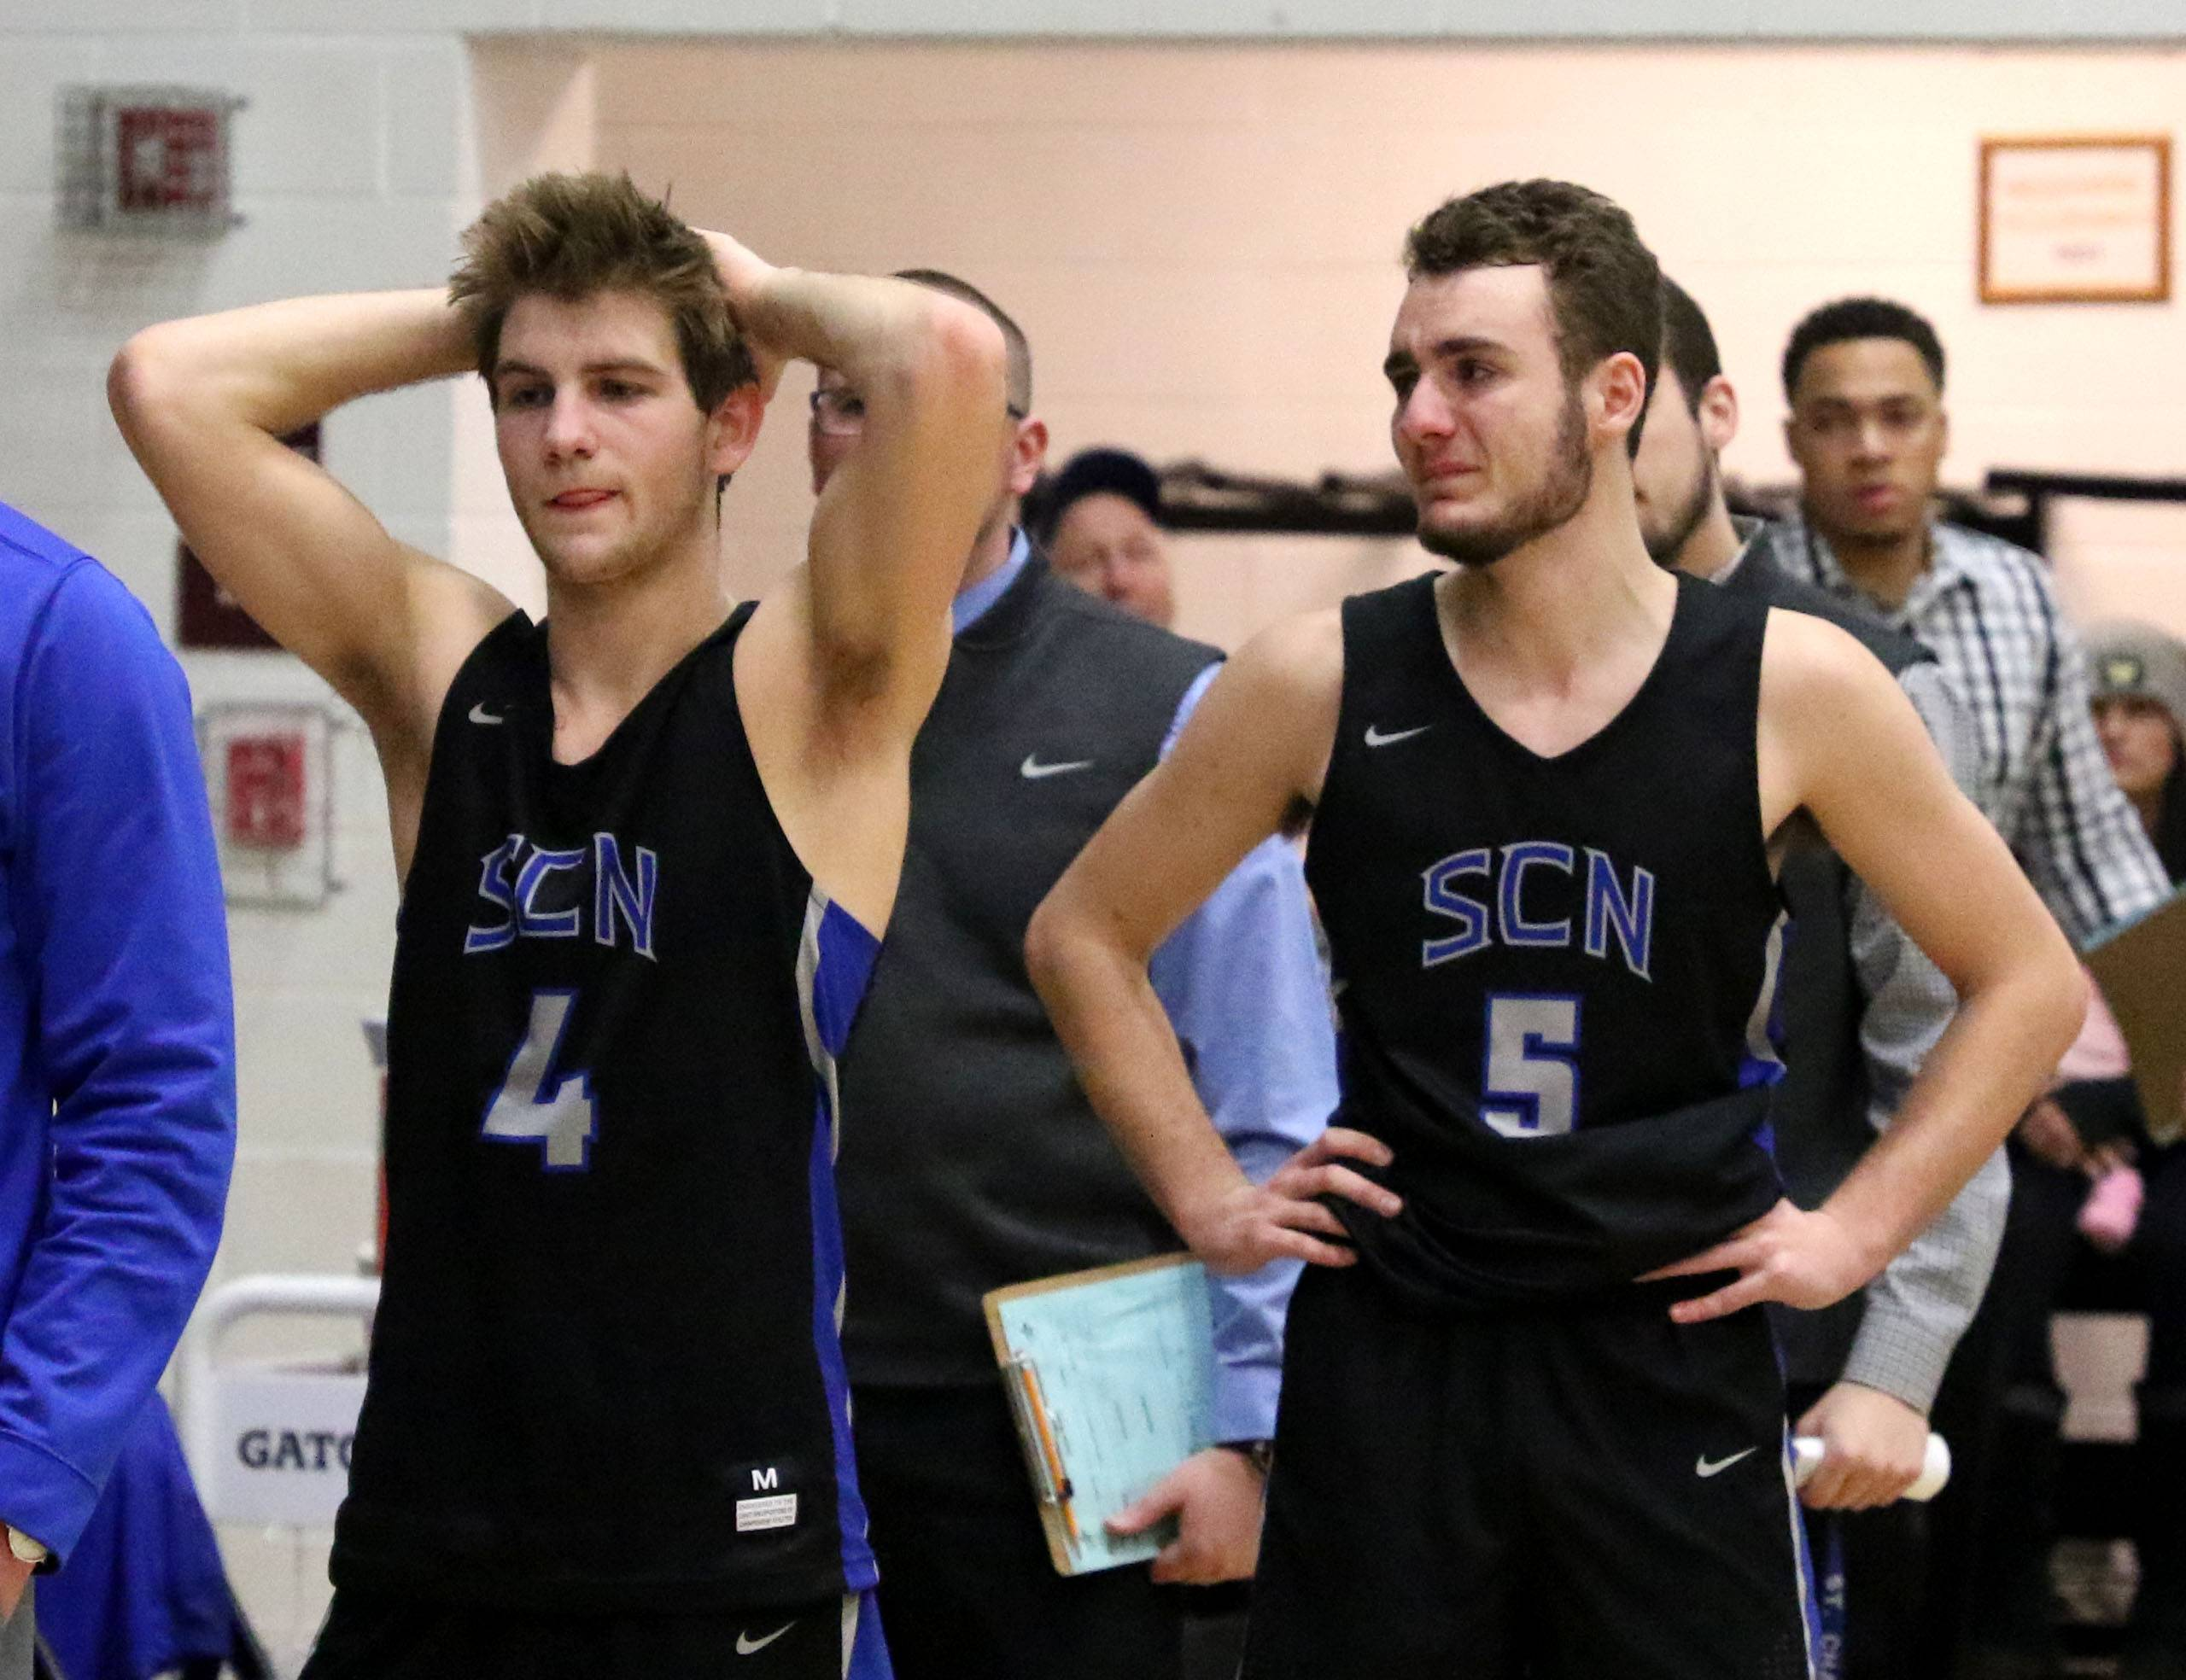 The North Stars fell to Larkin High School in a Class 4A regional championship game at St. Charles North Friday night. Zachary Ludwig, left, and Brendan Dal Degan react after the final buzzer sounds.